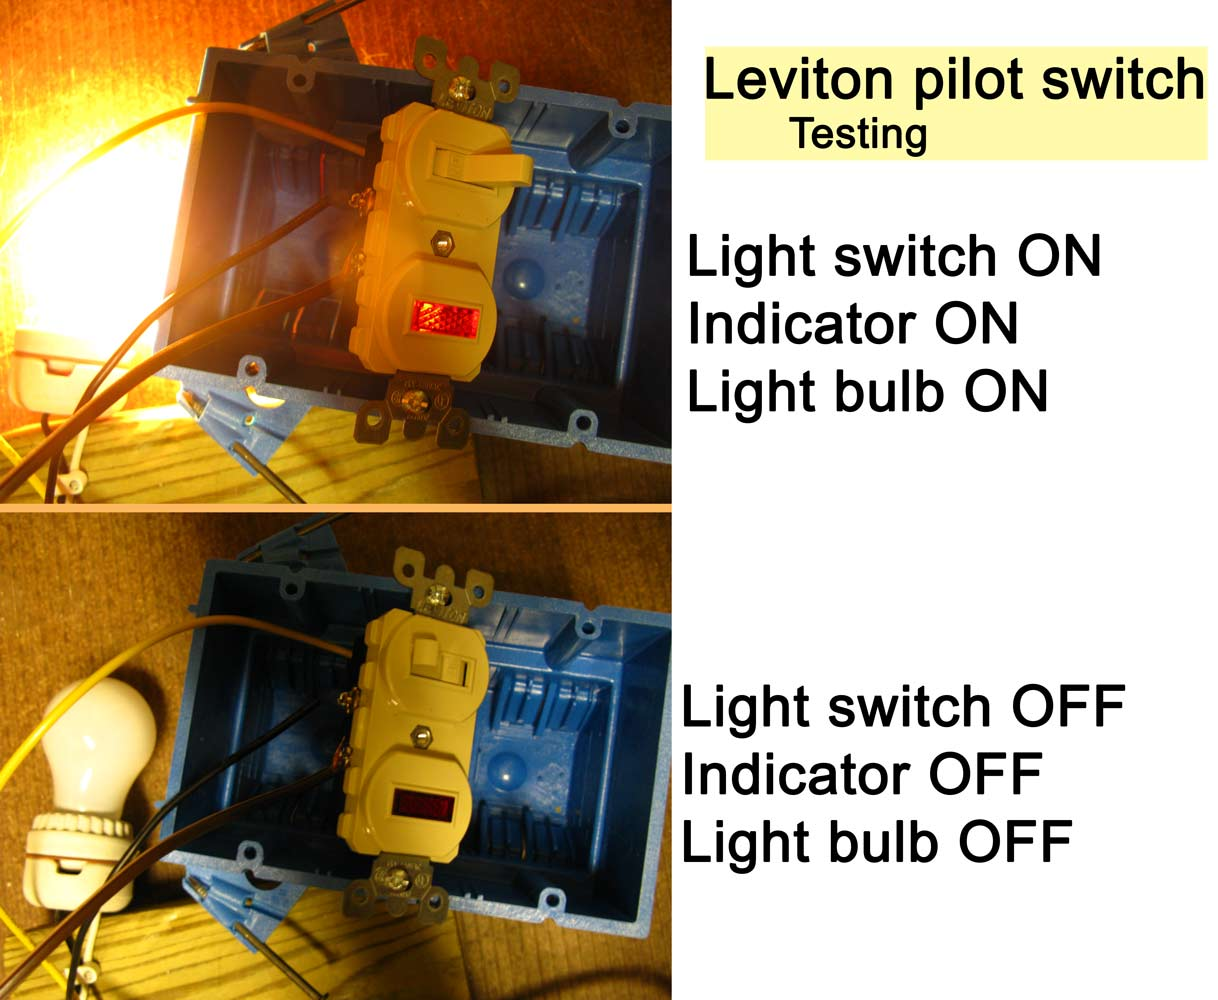 How To Wire Cooper 277 Pilot Light Switch 3 Way Leviton See Testing Photographs 1 2